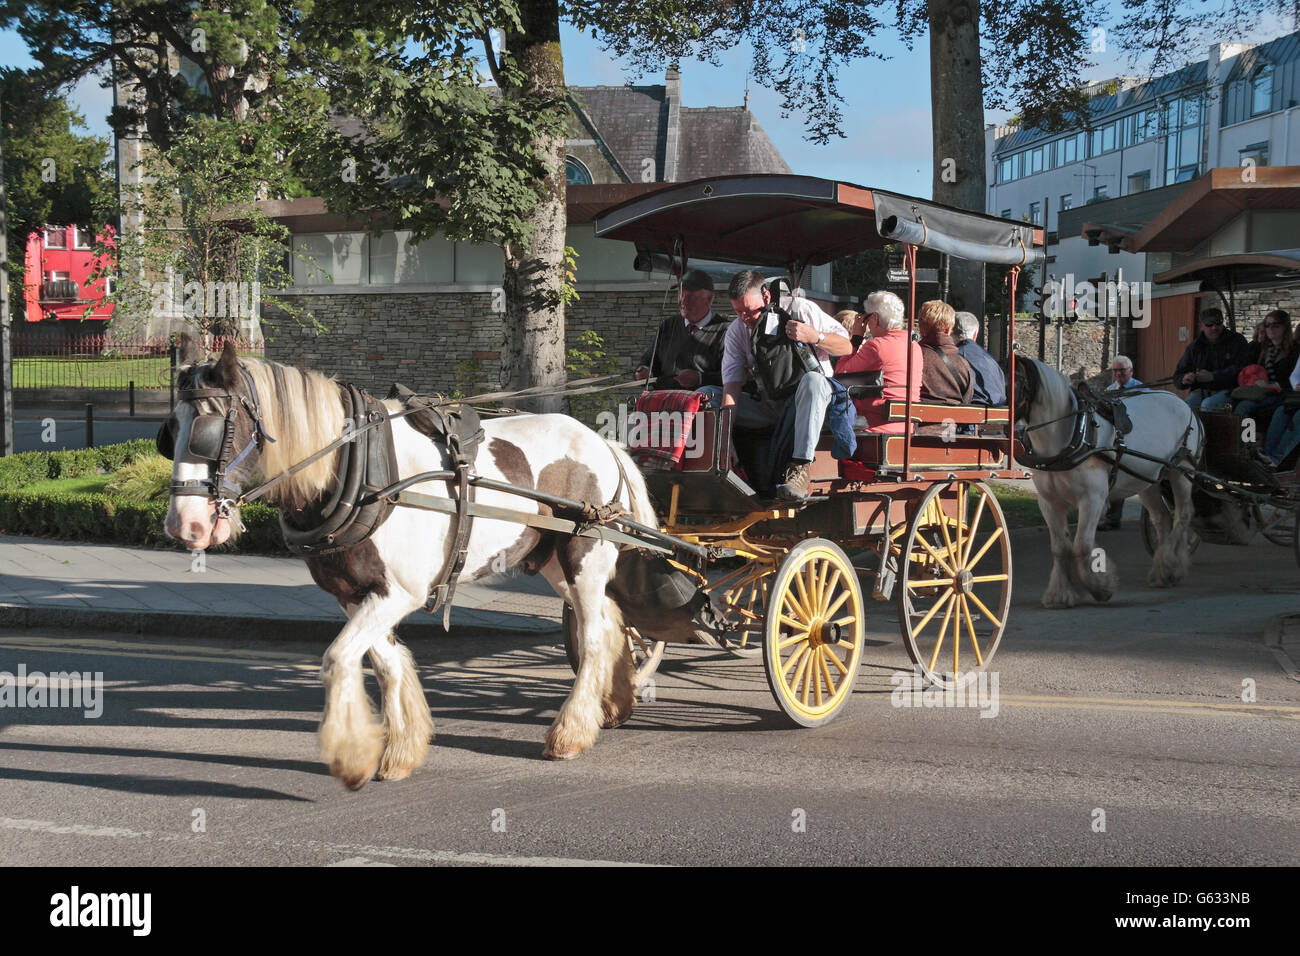 Tourists on a pony trap ride in Killarney town centre, County Kerry, Ireland (Eire). - Stock Image